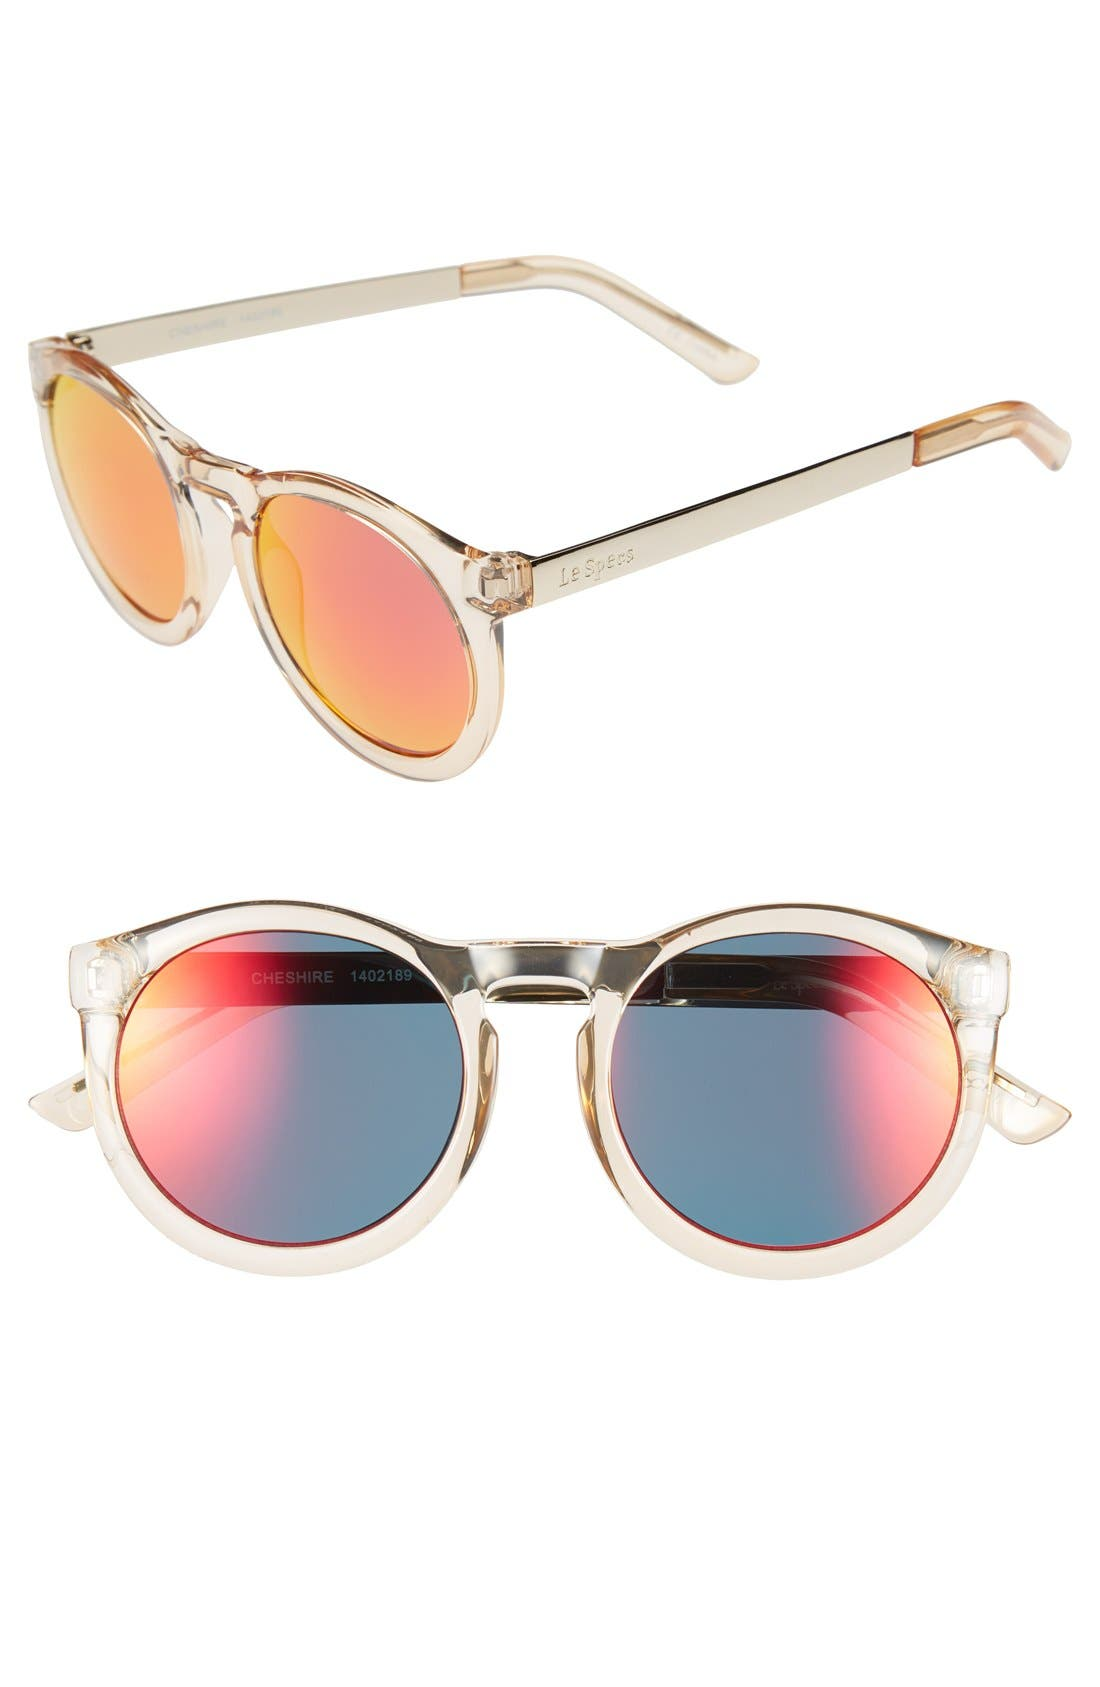 Alternate Image 1 Selected - Le Specs 'Chesire' Sunglasses